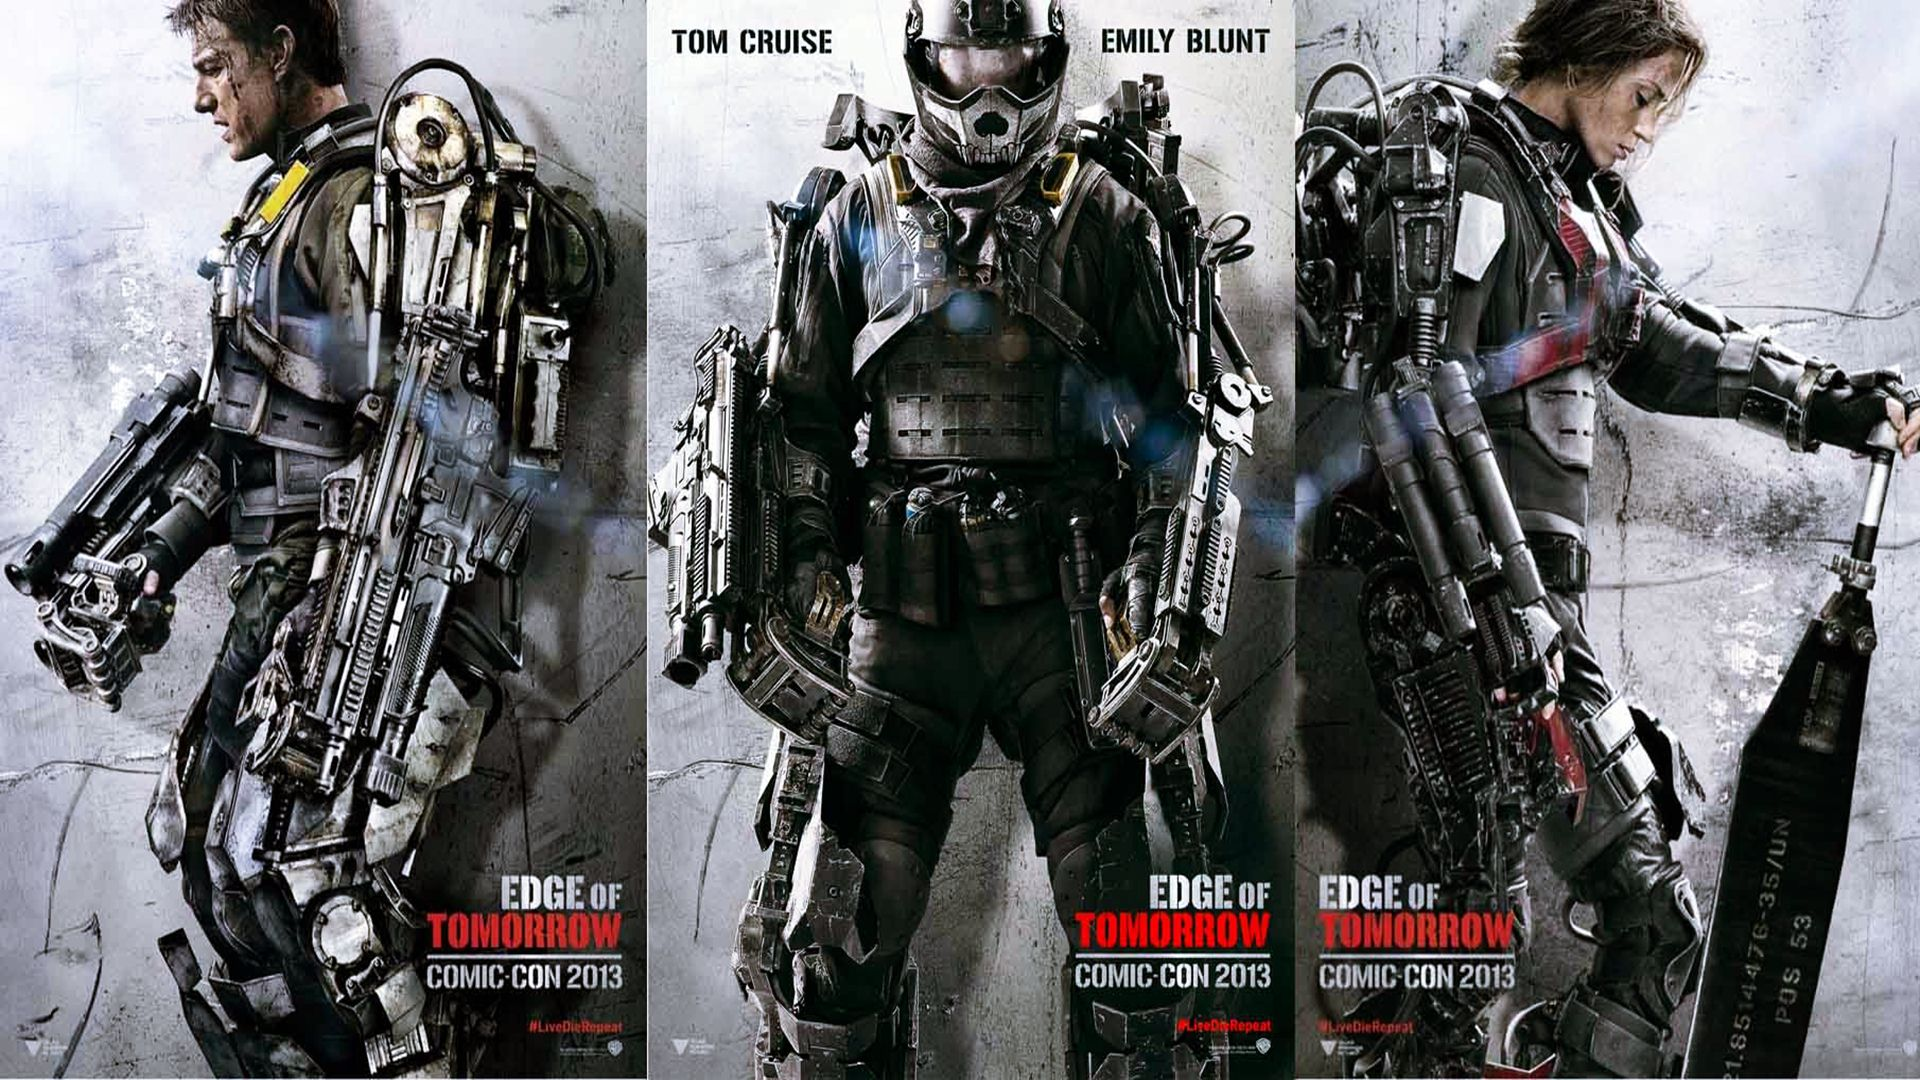 Edge Of Tomorrow 2014 Poster Wallpaper High Definition High Quality Widescreen